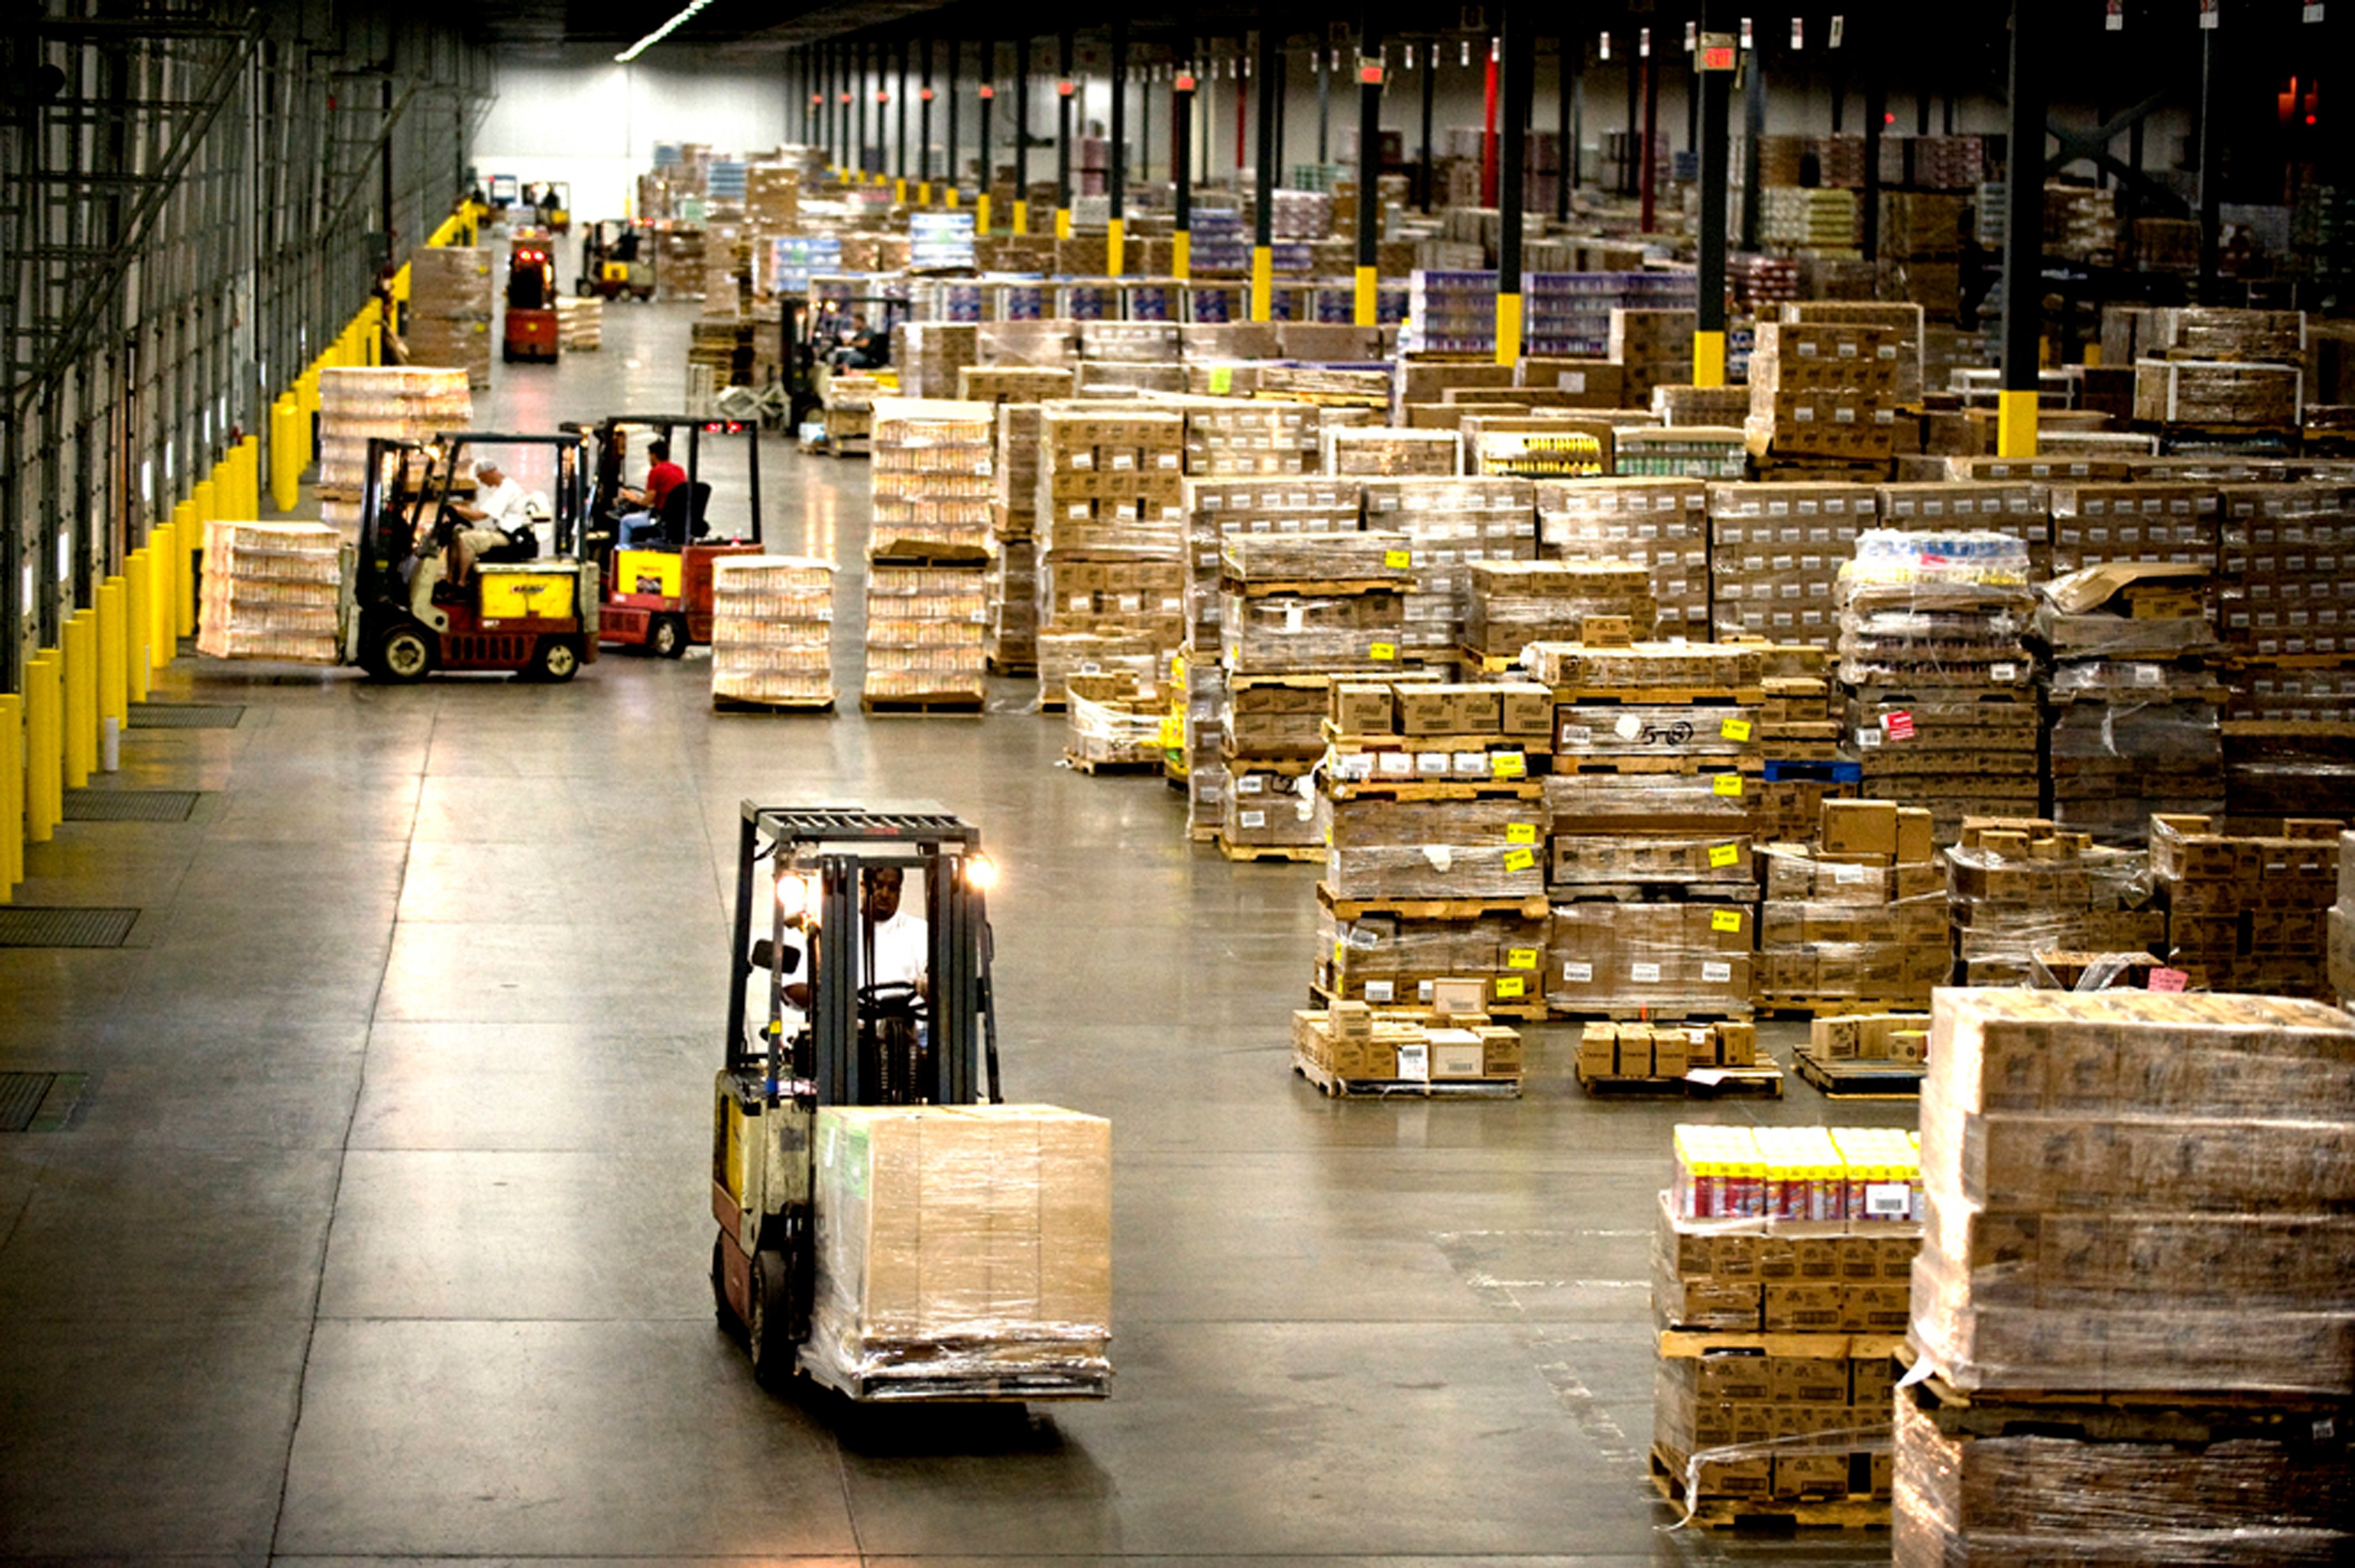 So You Want to Start Warehousing and 3PL Distributing - 10 Tips from Whale Logistics